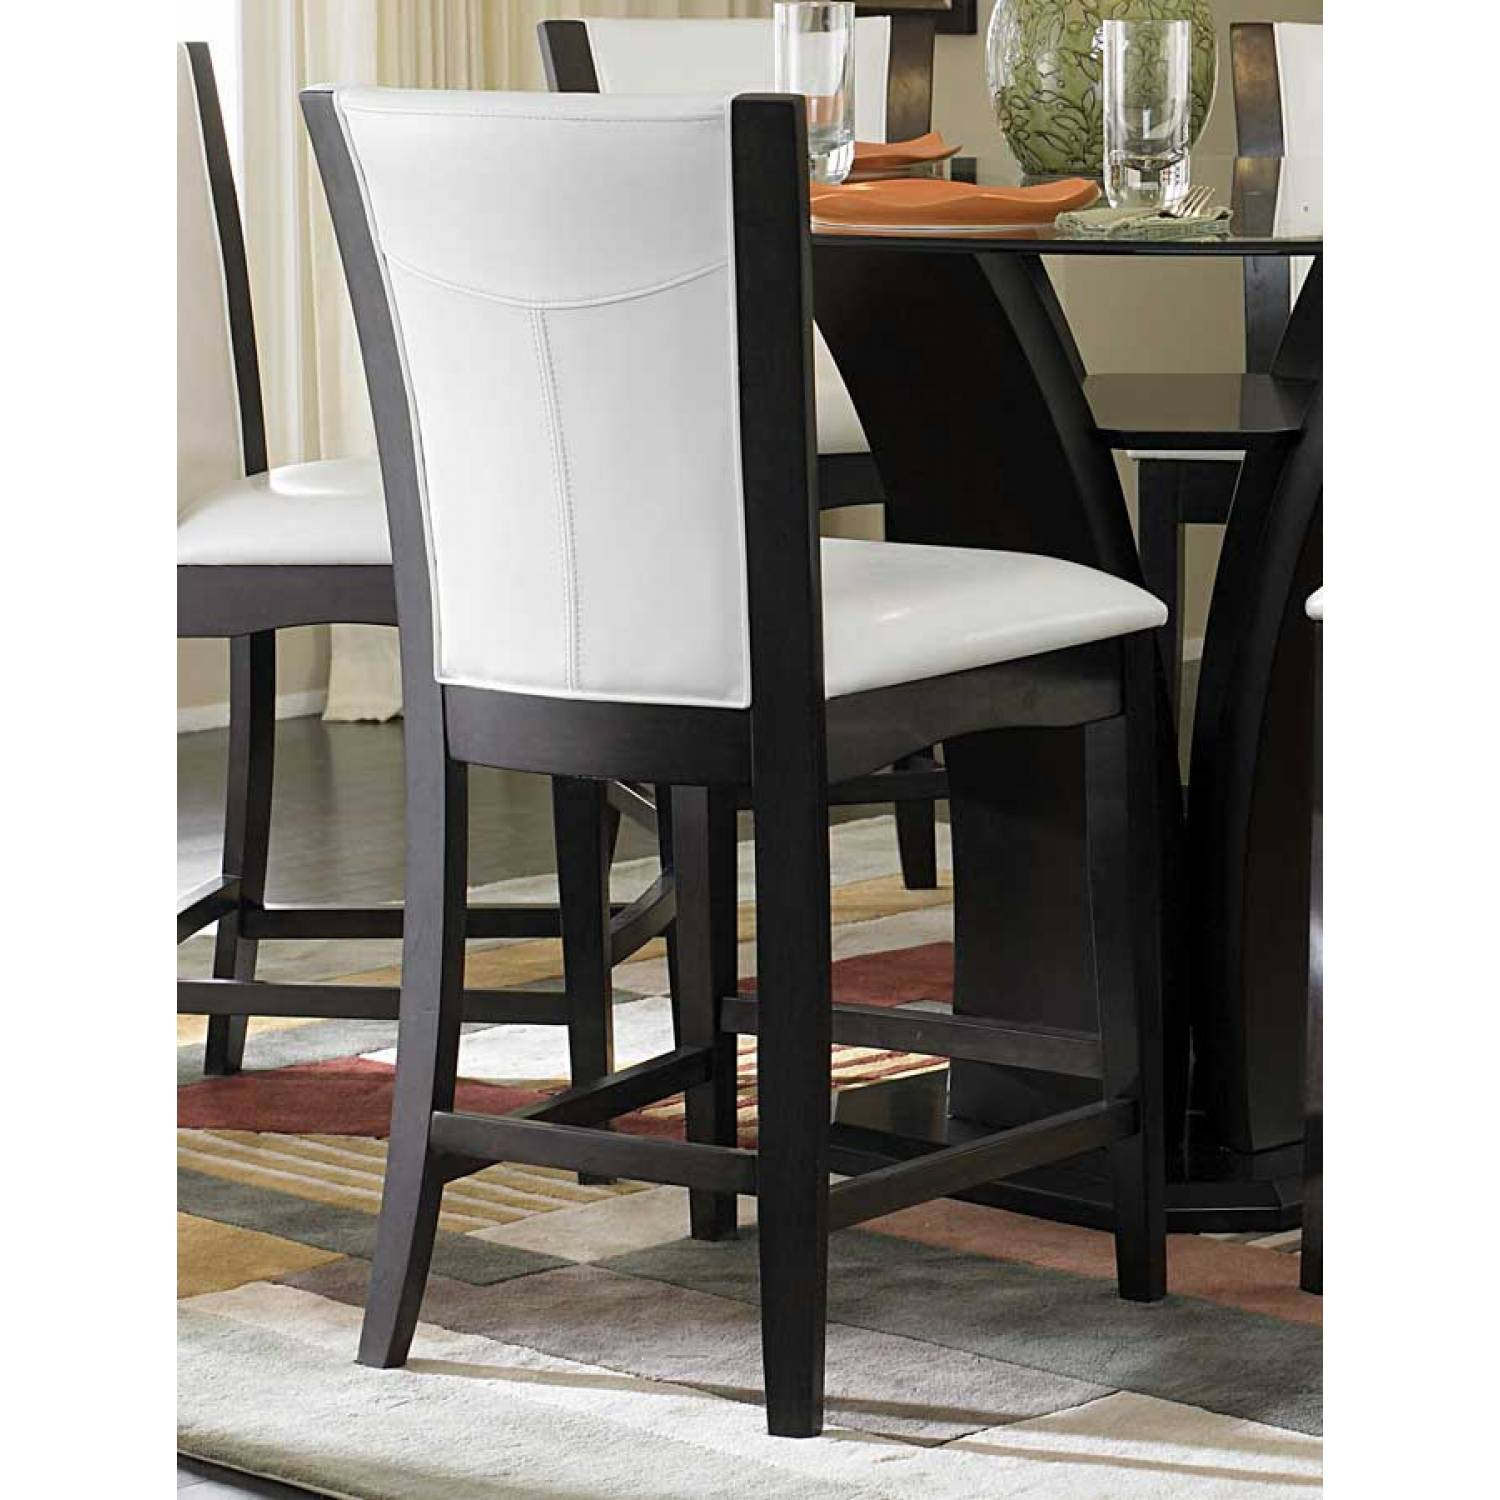 top counter height dining set 5pc set table 4 counter height chairs